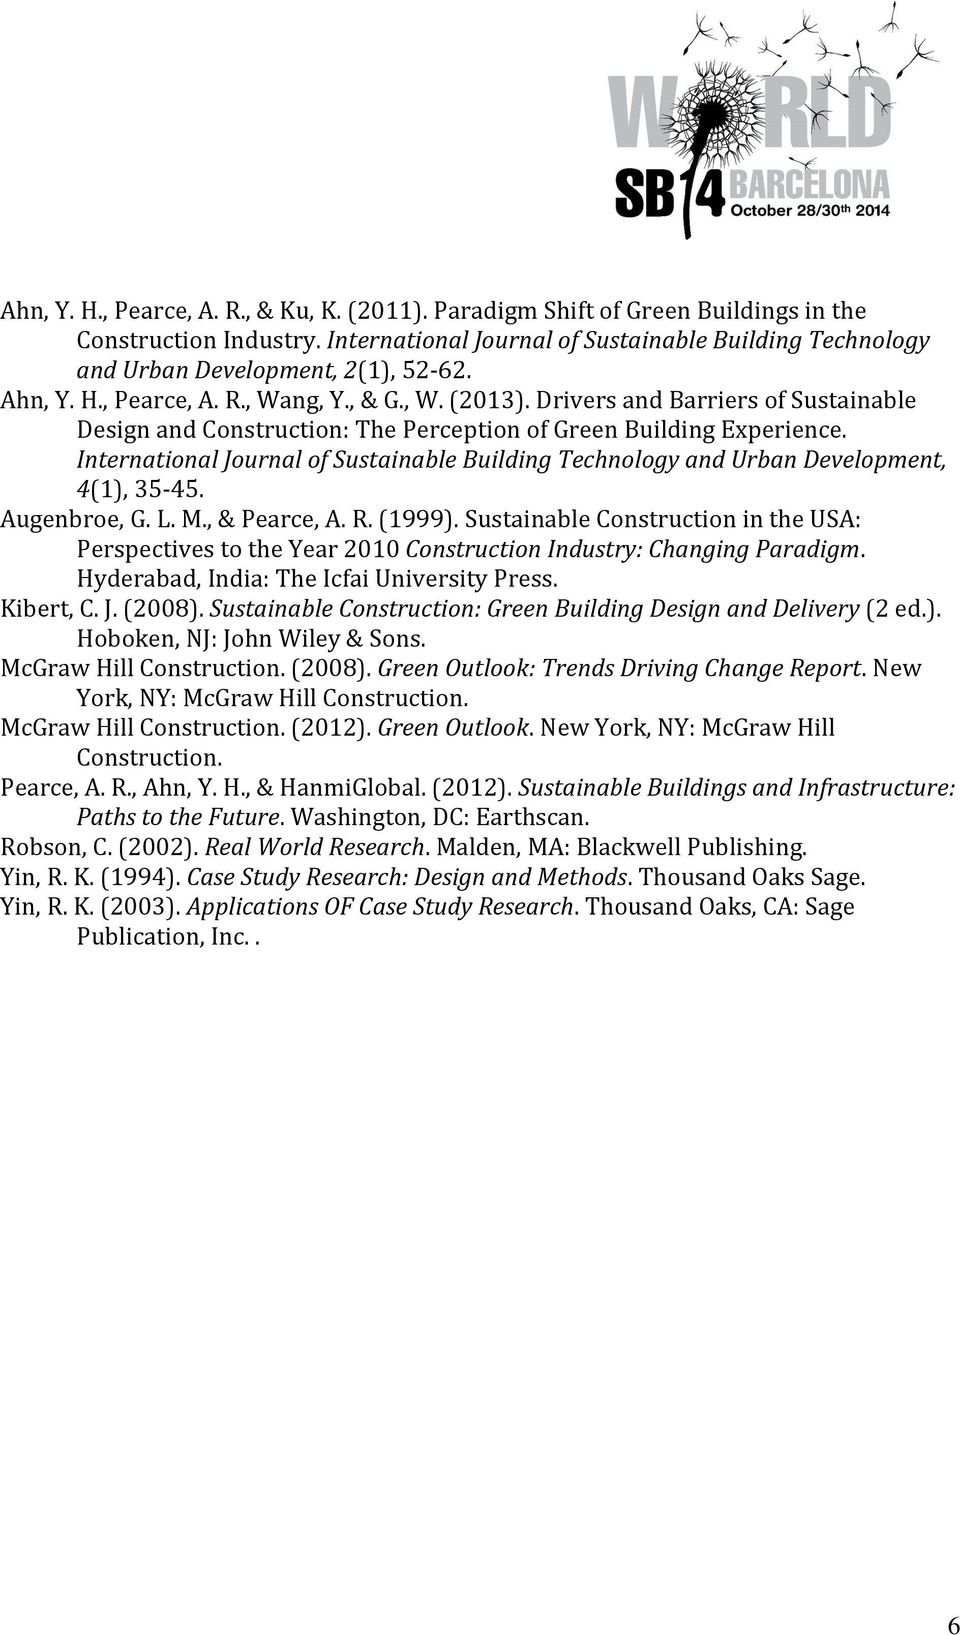 International Journal of Sustainable Building Technology and Urban Development, 4(1), 35-45. Augenbroe, G. L. M., & Pearce, A. R. (1999).